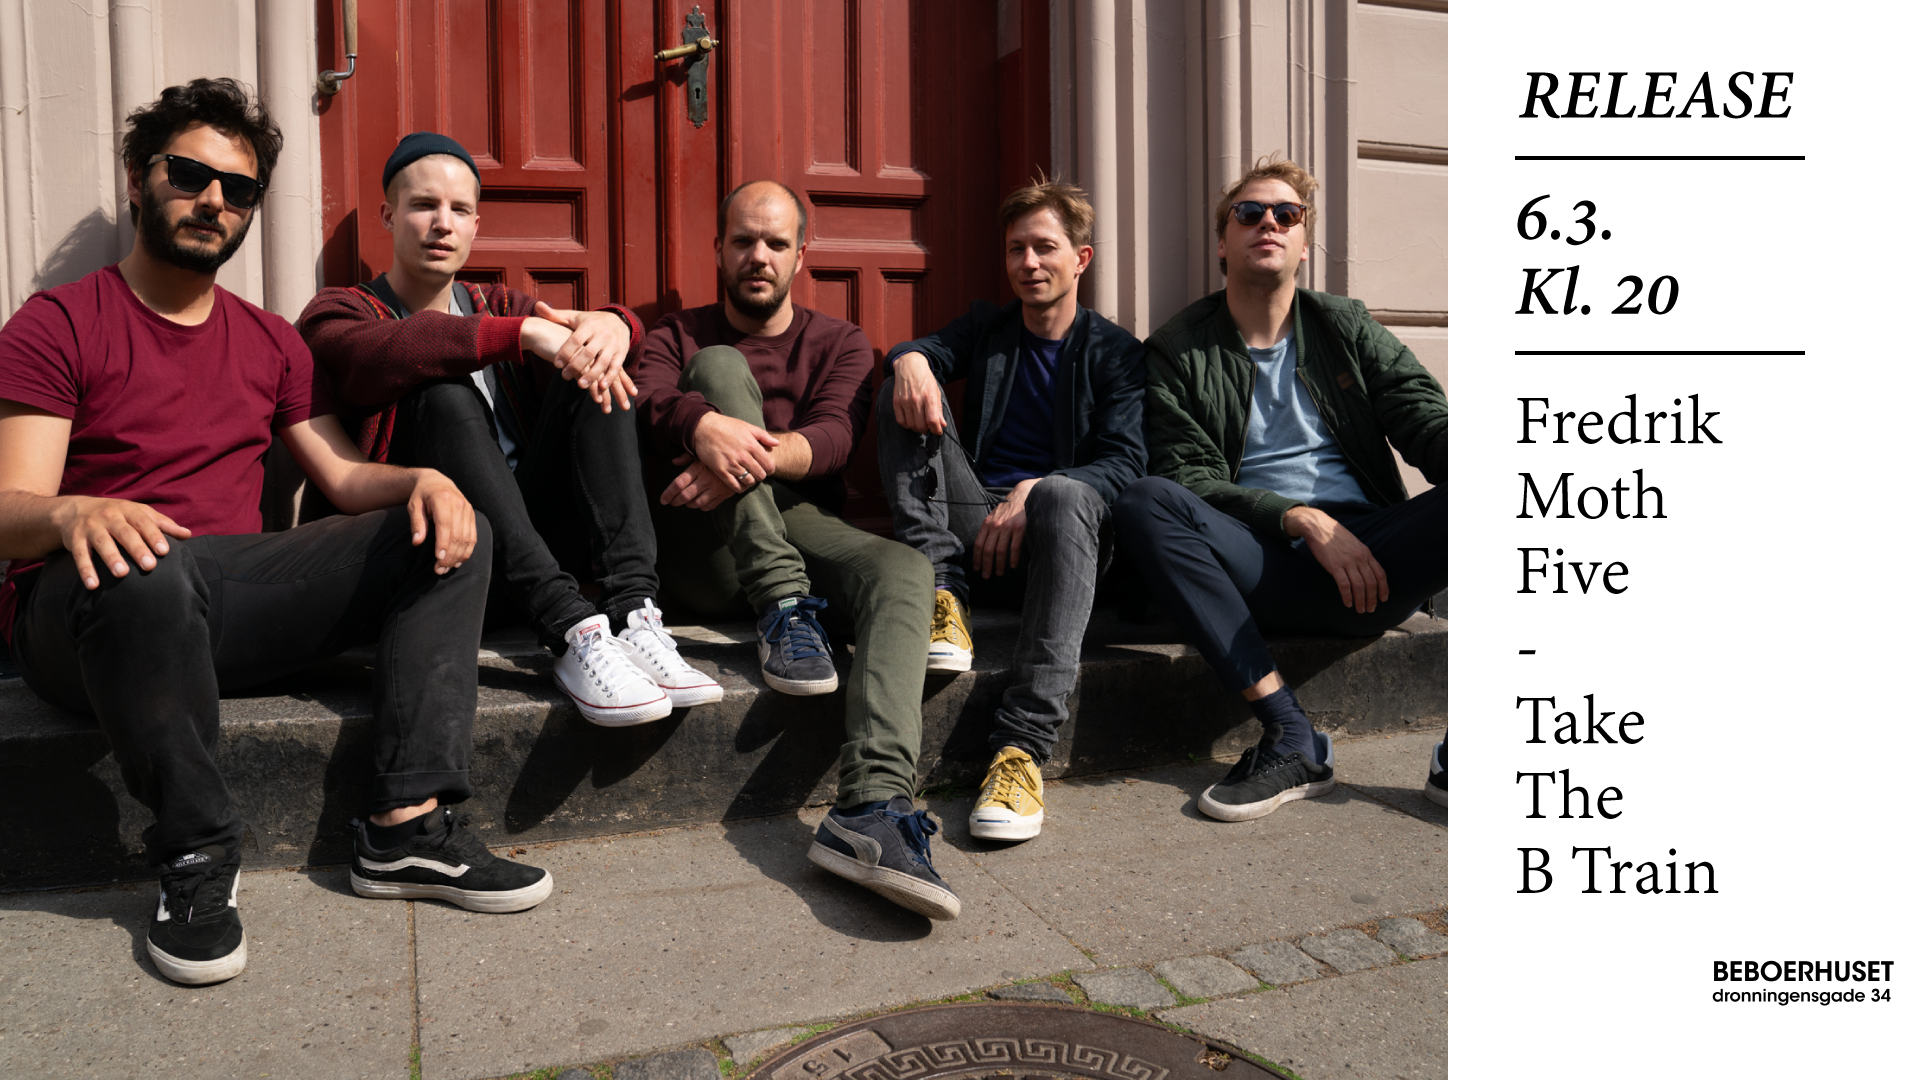 Fredrik Moth Five – Take The B Train